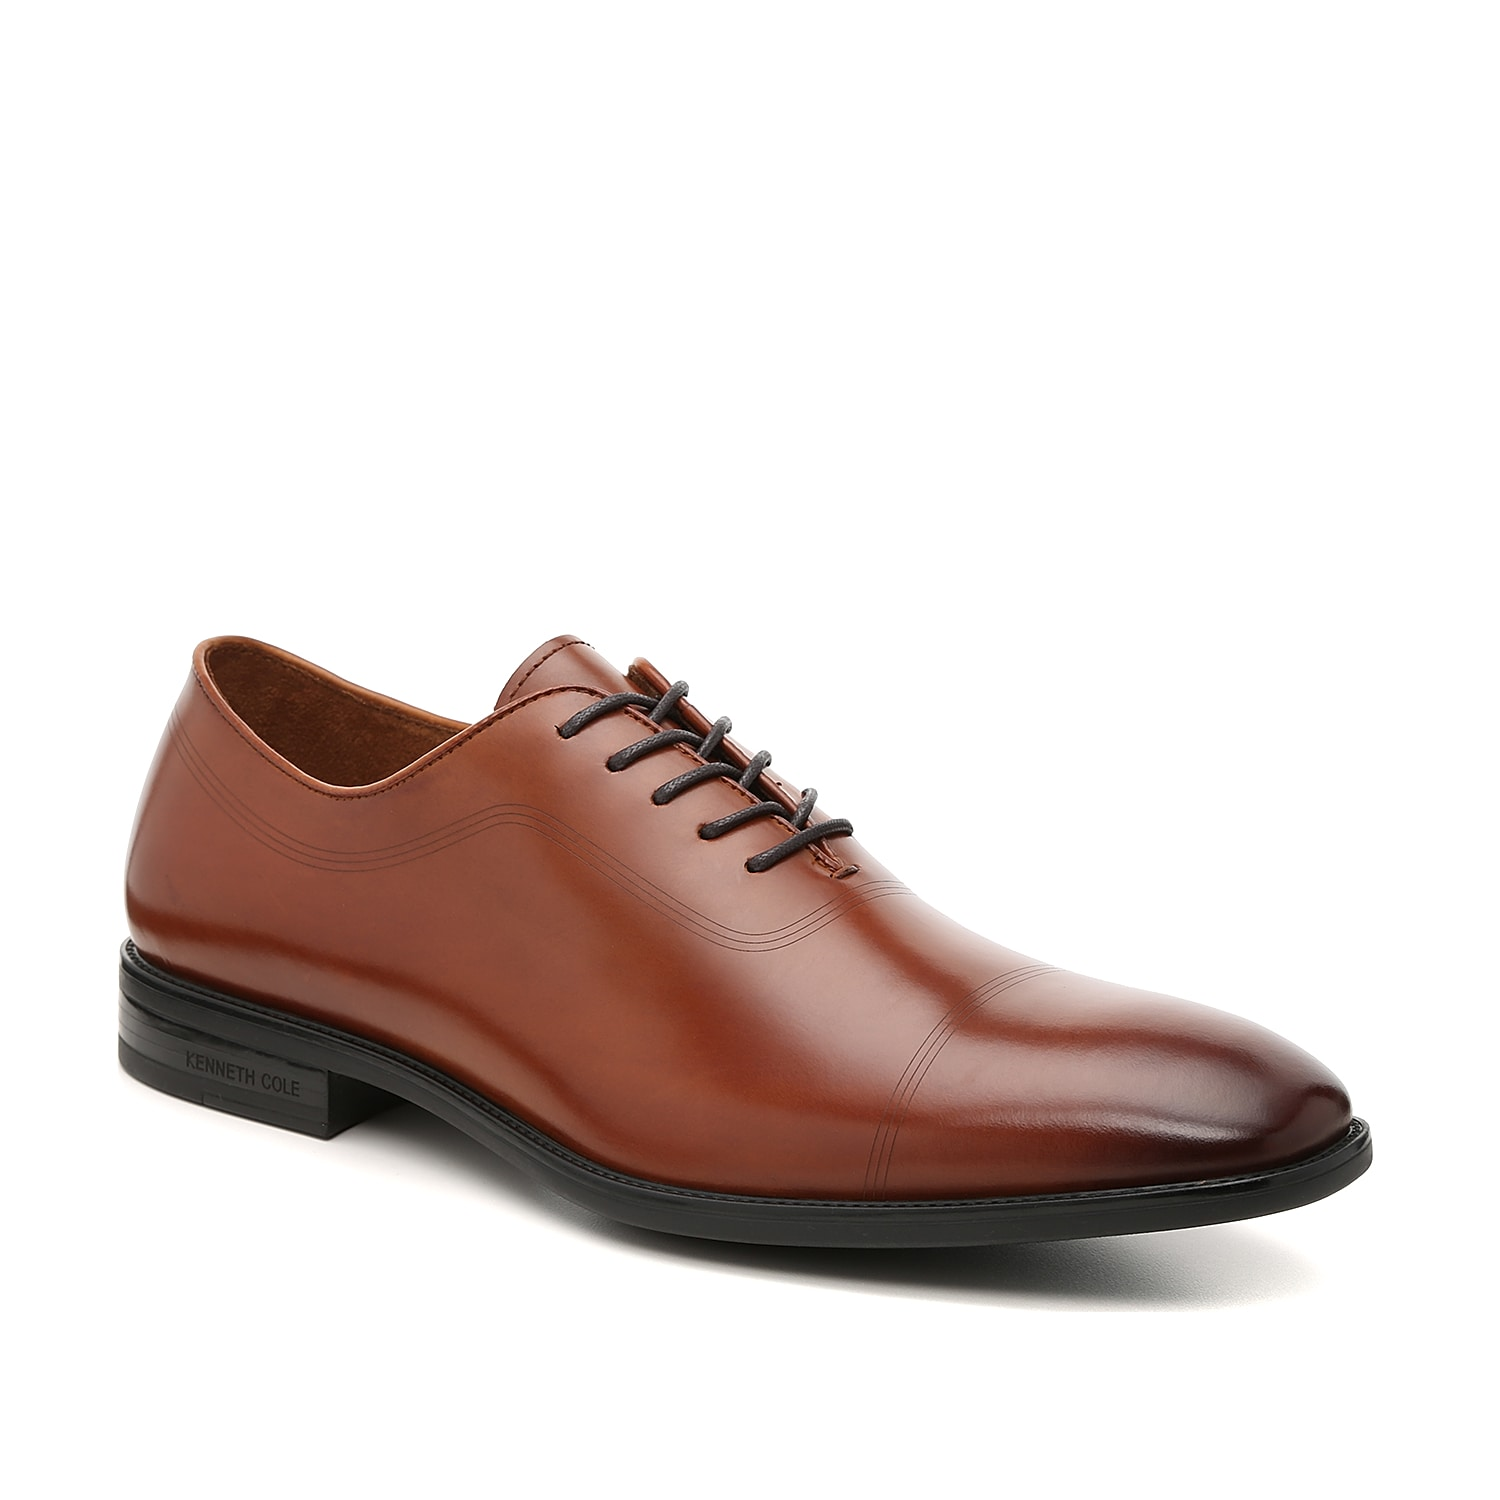 Modernize work or date night looks with the Kenneth Cole New York Ticketpod oxford. These dress shoes feature a sleek leather upper and is detailed with thin laser-cut lines that complement slacks and a fitted blazer.